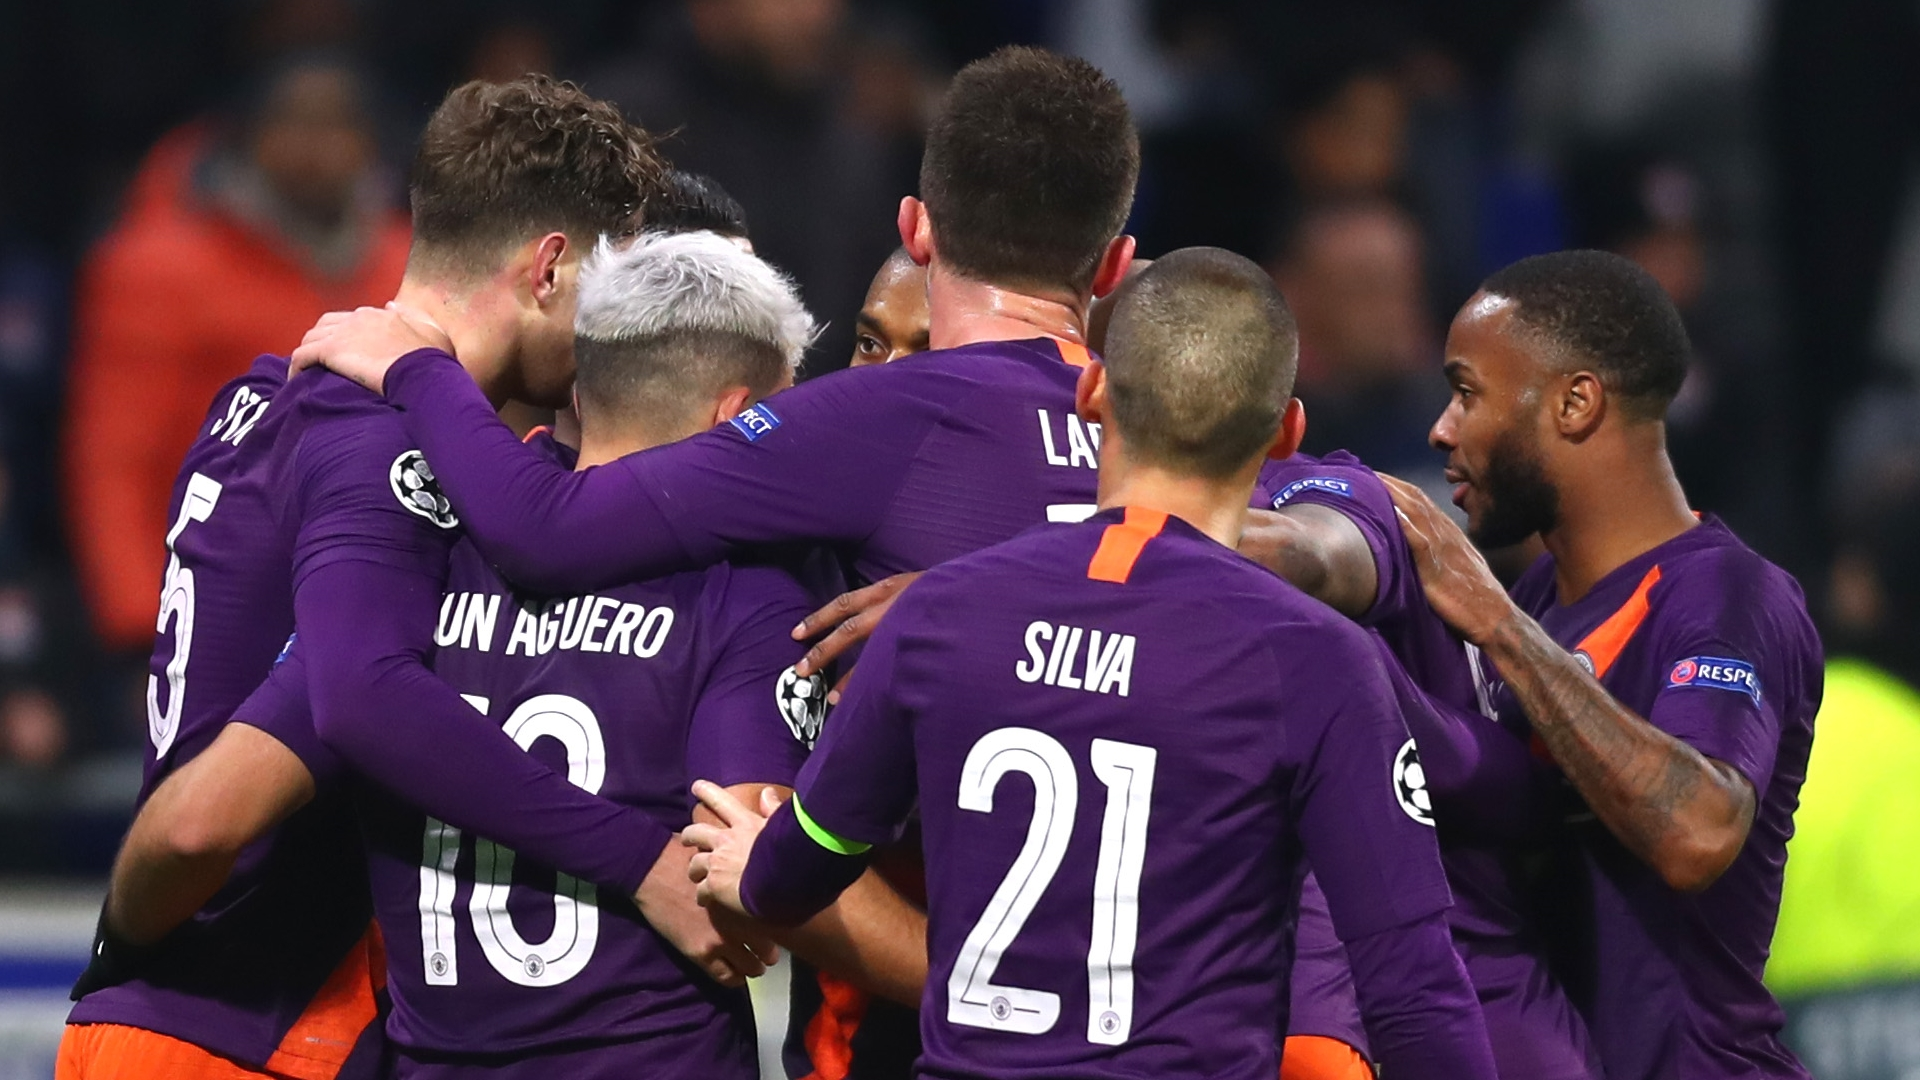 Pep Guardiola confirms Manchester City's (lack of) January transfer window plans